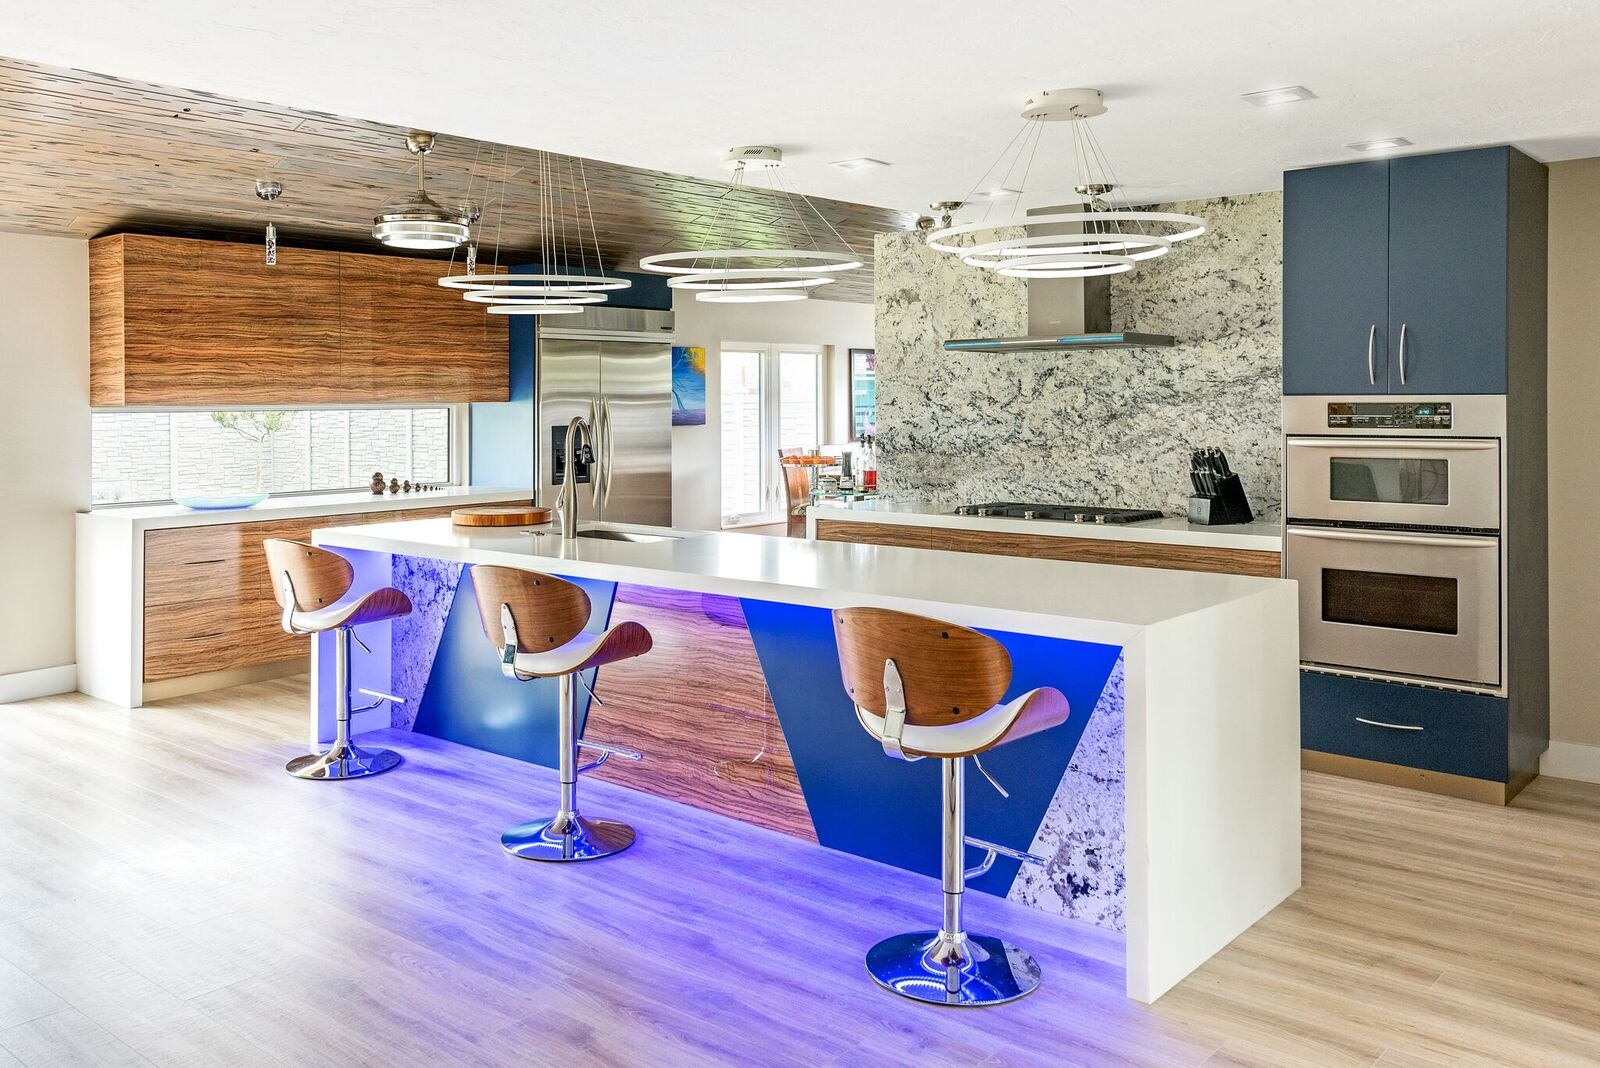 Futuristic Kitchen Design Cabinet Solutions Experienced Home Improvement Cabinetry Specialist In Sarasota